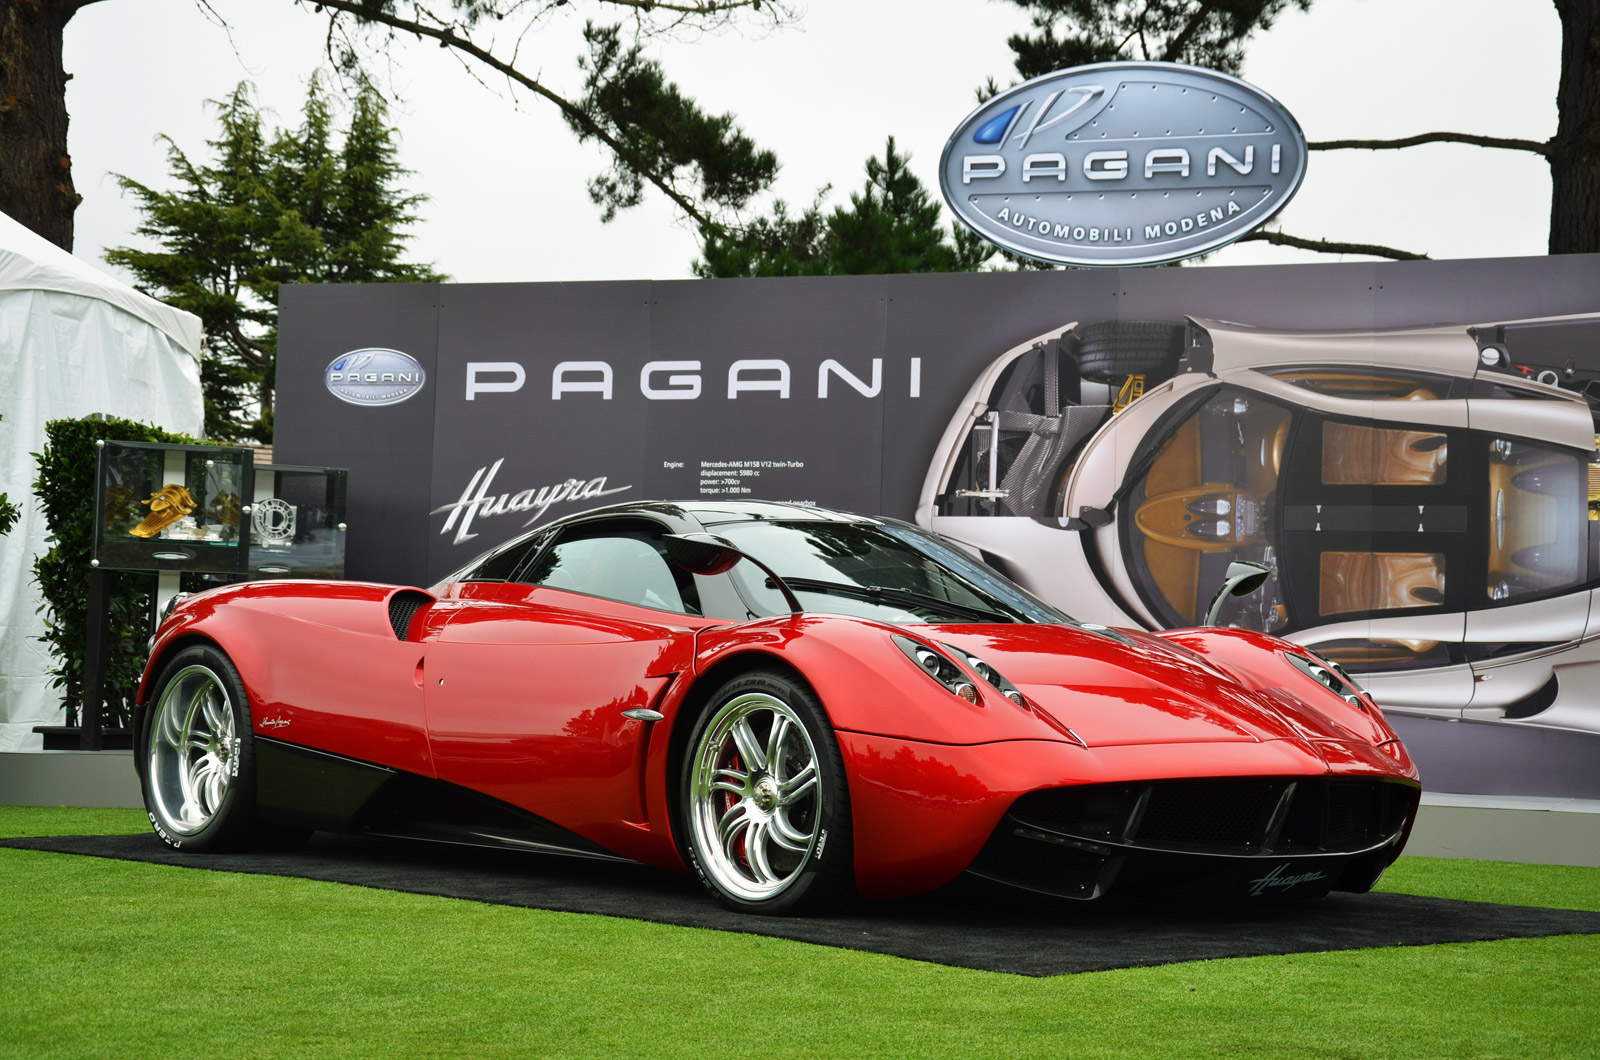 Pagani Huayra, nd Officially Arrives In North America: Video